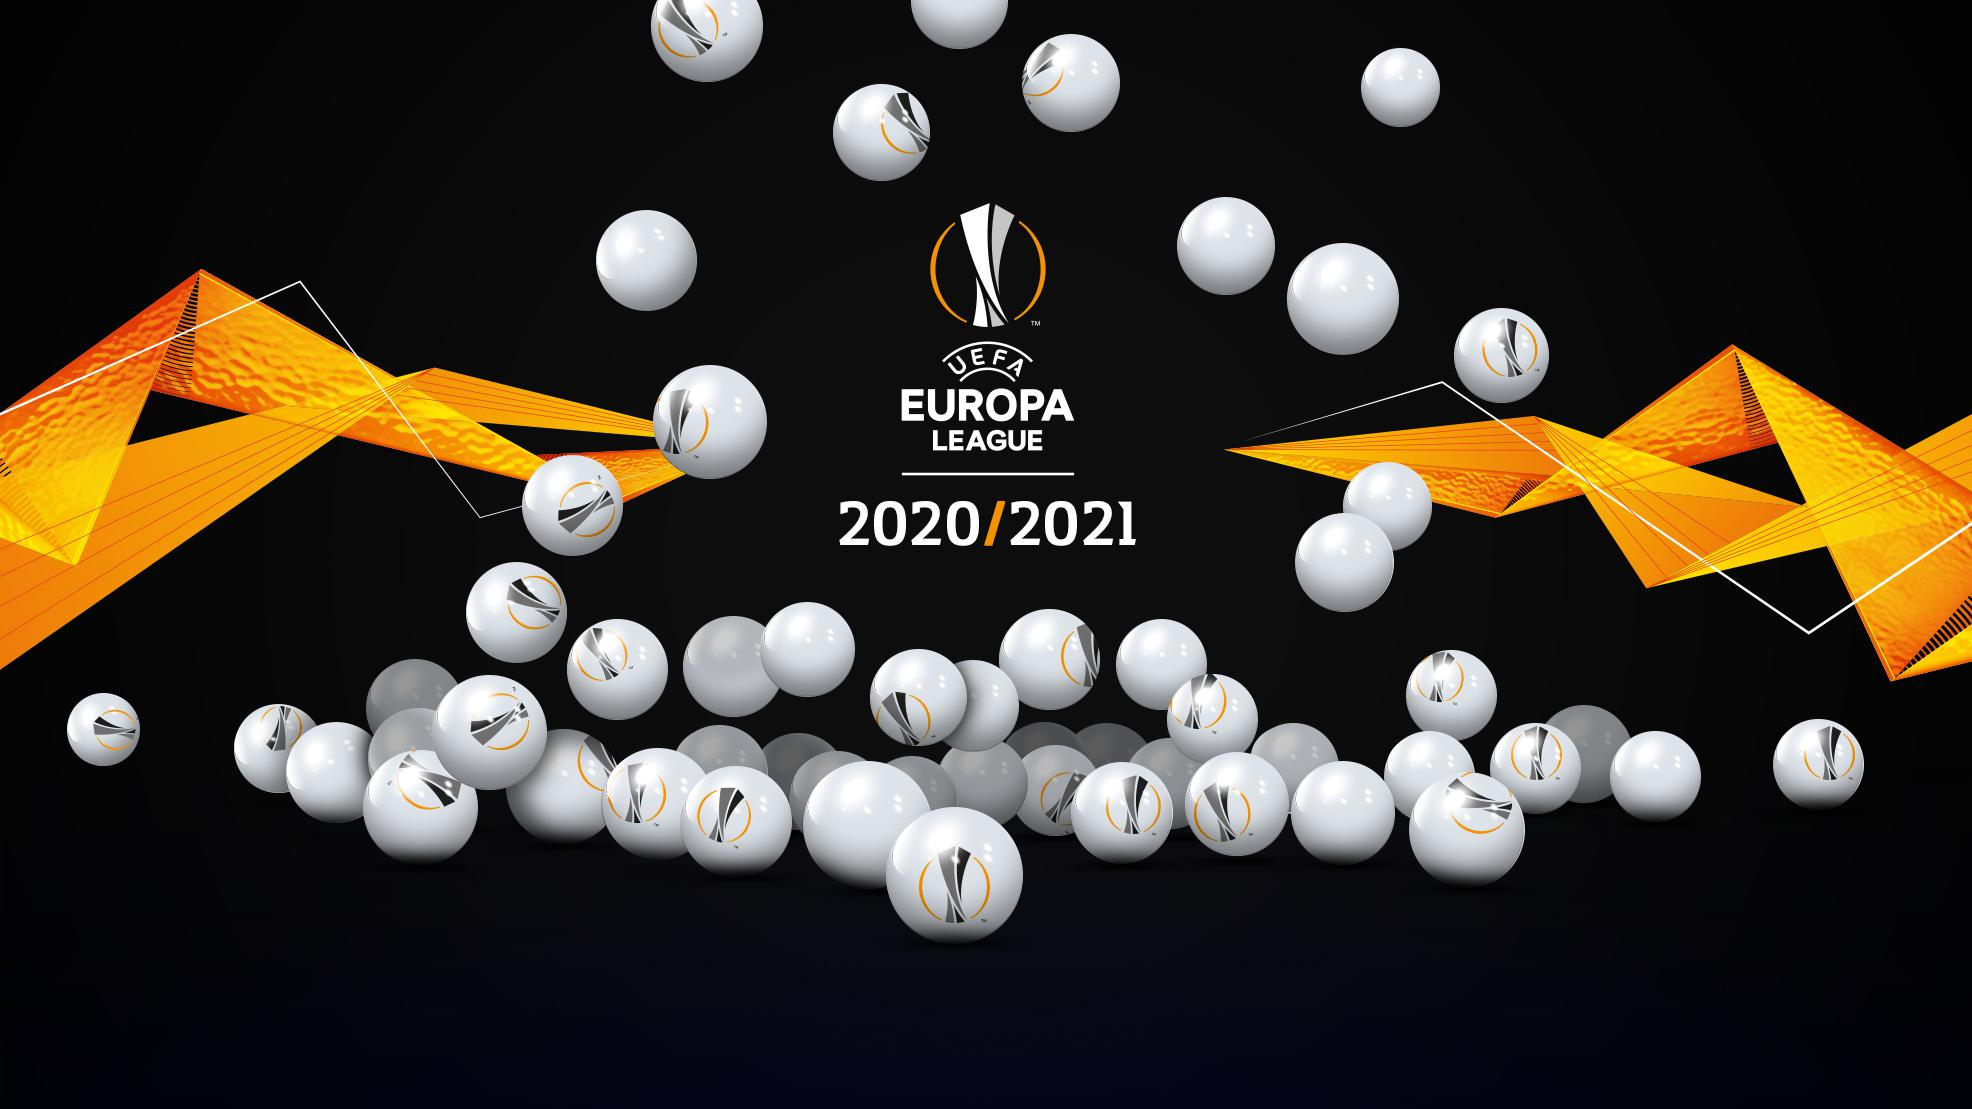 europa league group stage draw all you need to know uefa europa league uefa com europa league group stage draw all you